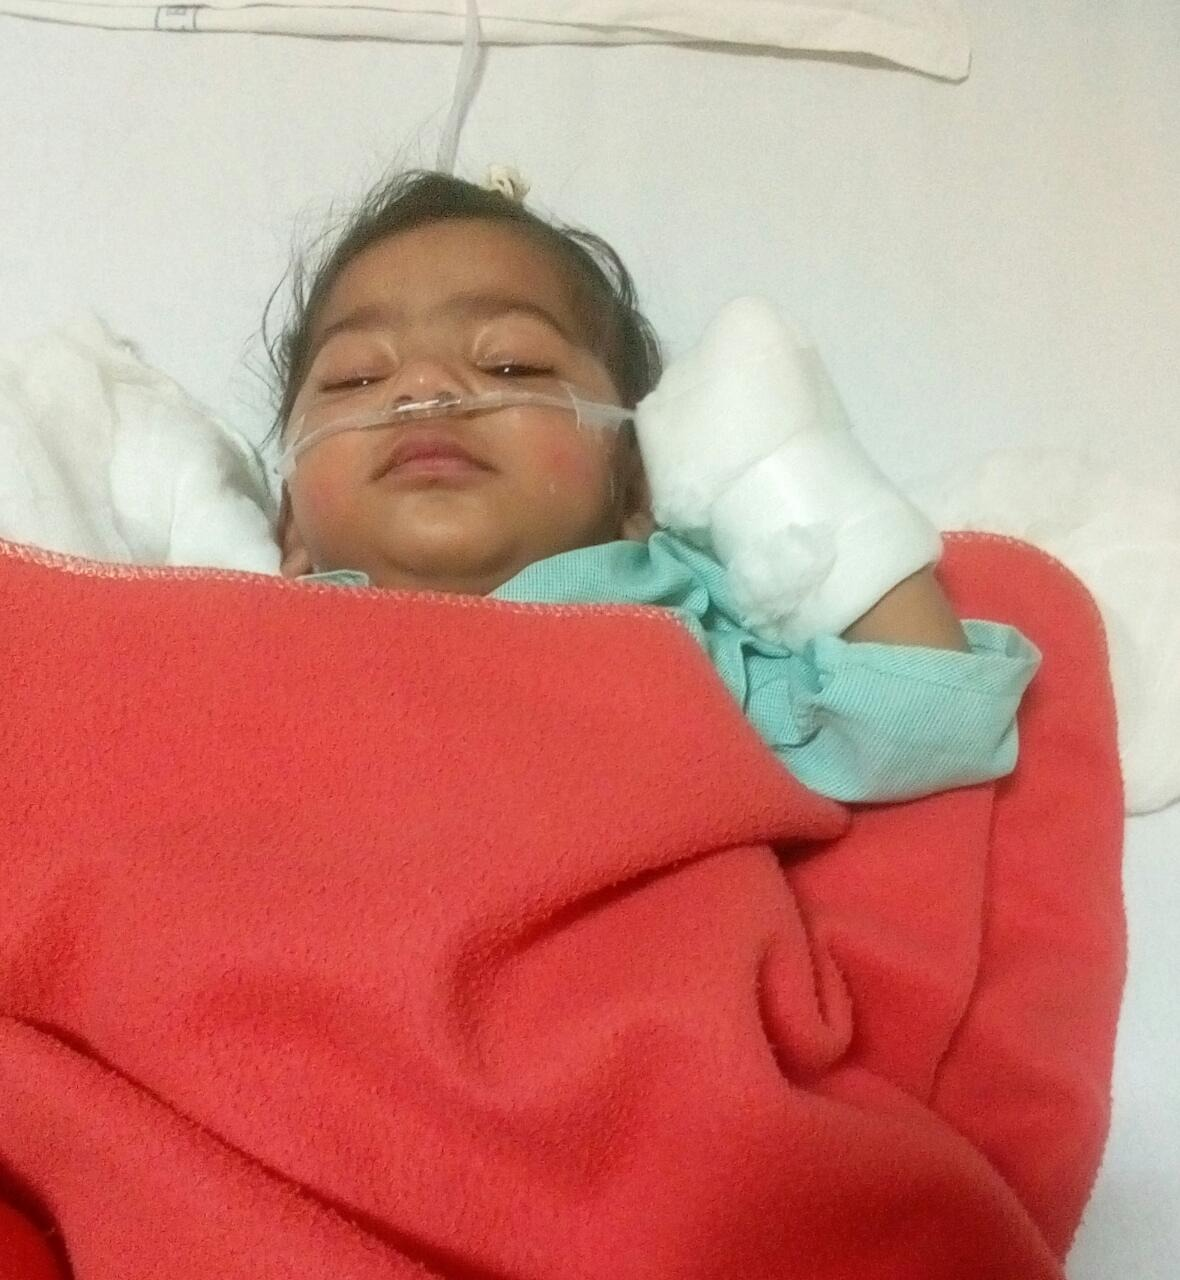 Helping Hand Foundation has provided financial assistance for an Emergency Surgery